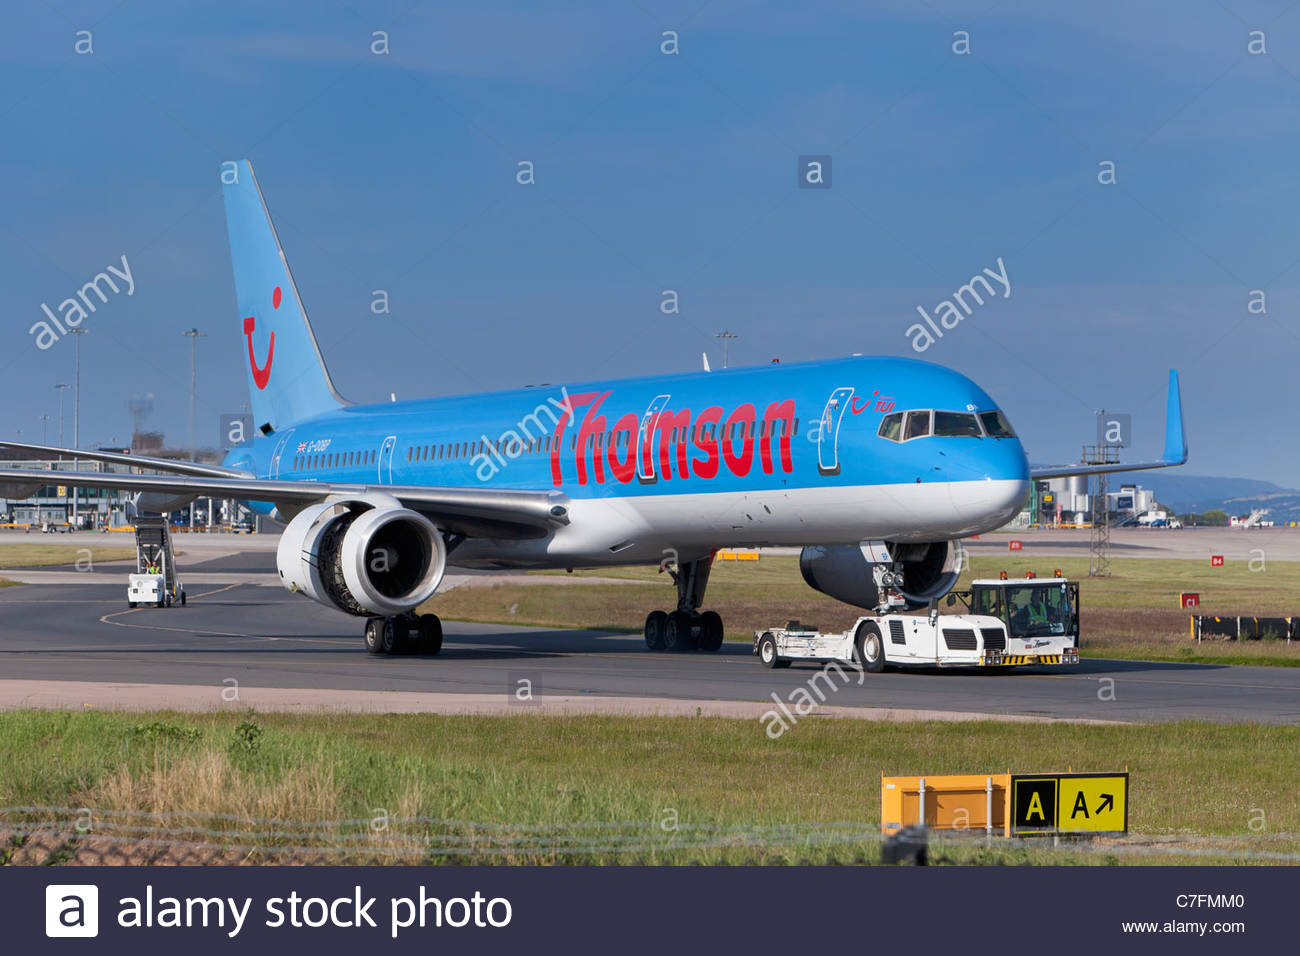 Un fly.com Thomson avion, Angleterre Photo Stock